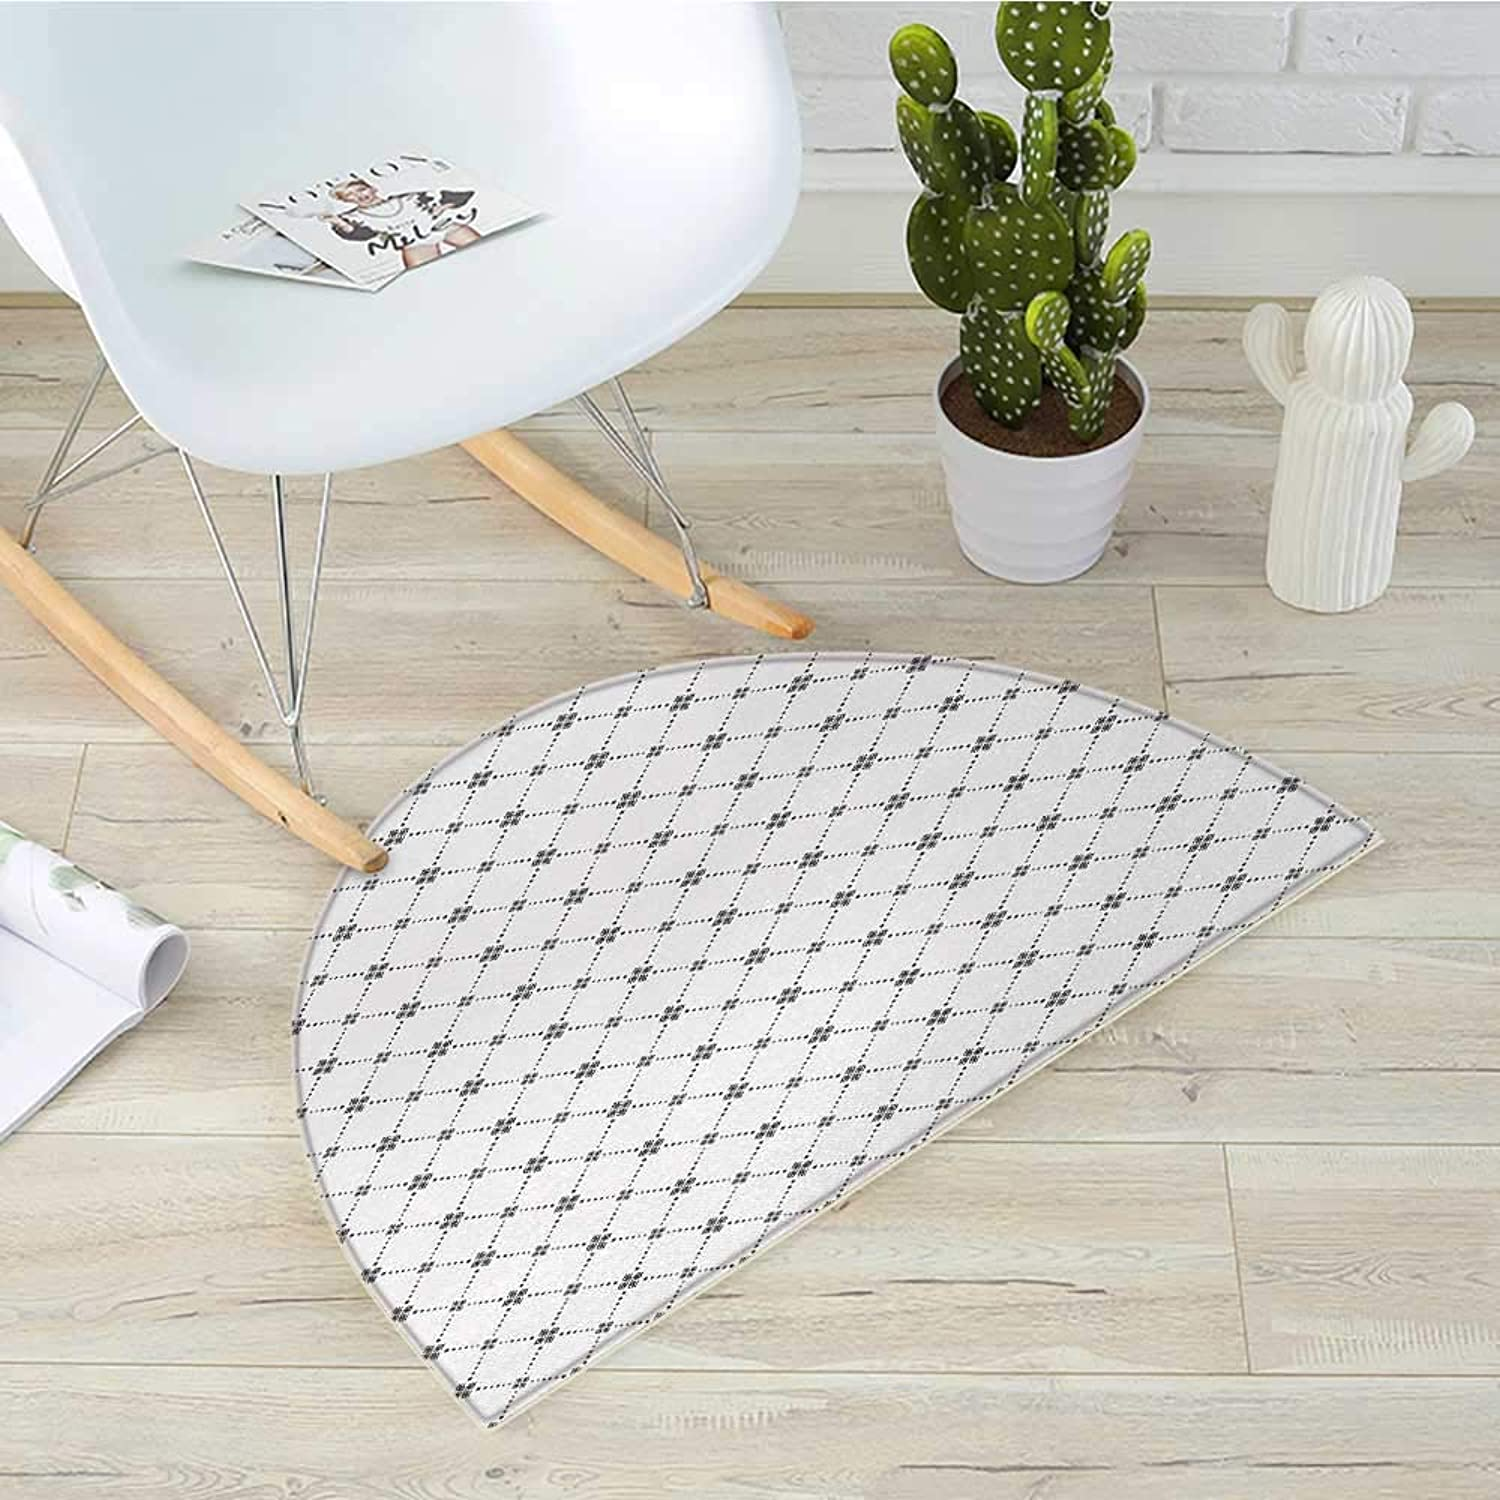 Geometric Semicircular CushionRepeating Dotted Rhombuses and Flowers Modern Stylish Texture Pattern Print Entry Door Mat H 39.3  xD 59  Grey and White